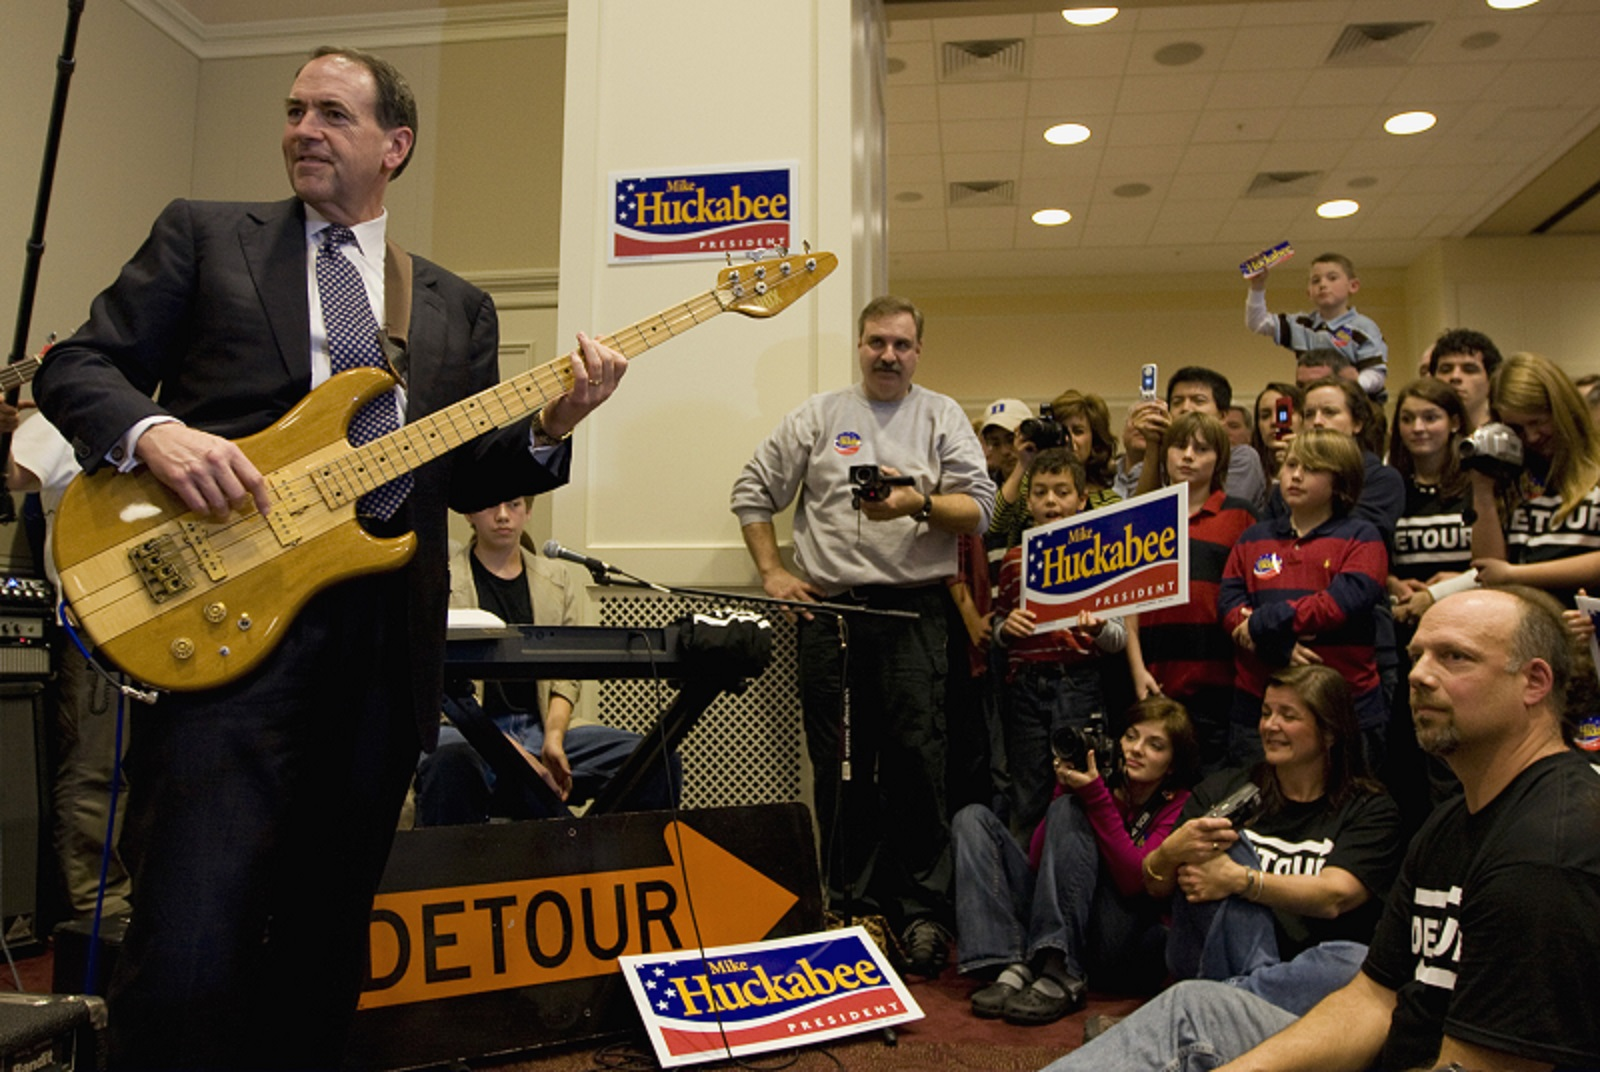 Mike Huckabee plays bass guitar